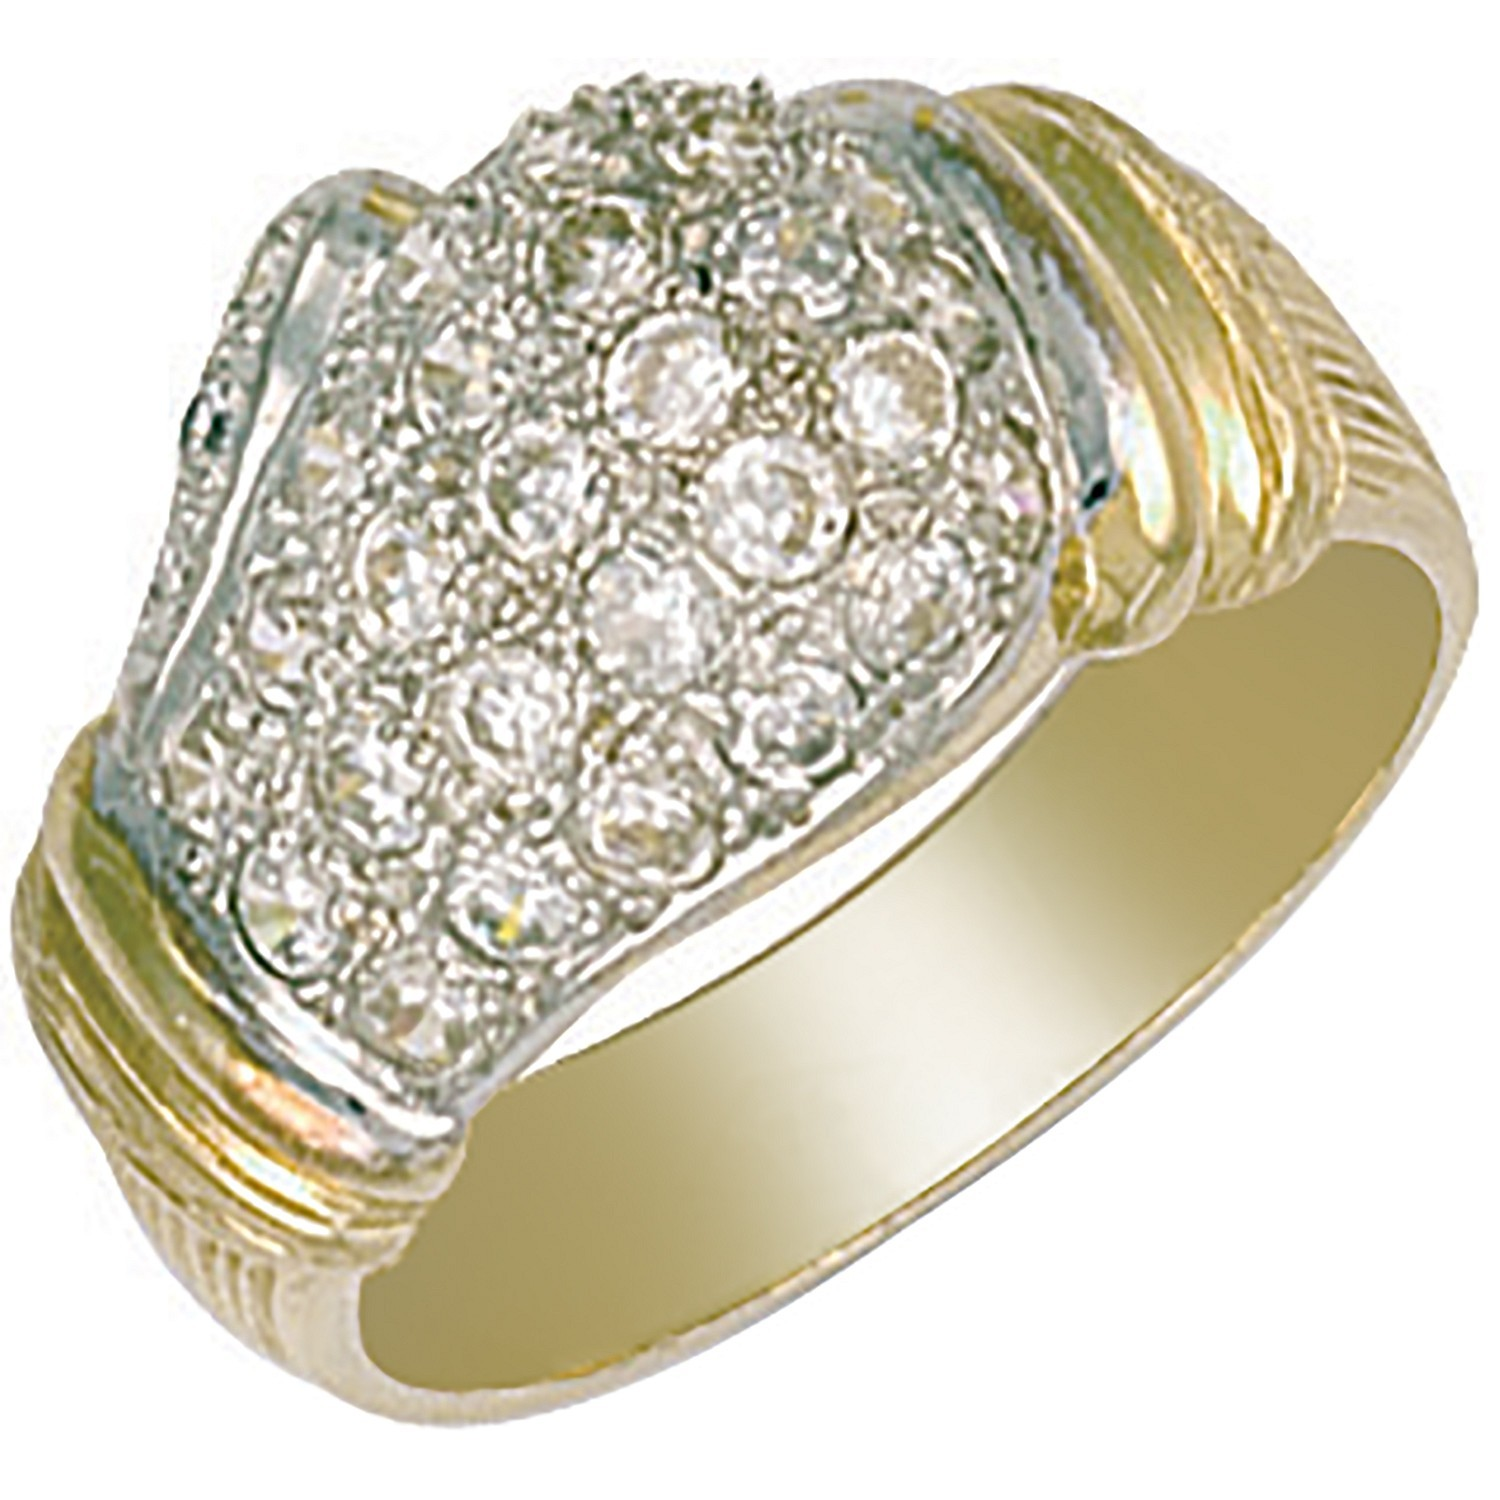 Y/G Cz Boxing Glove Ring